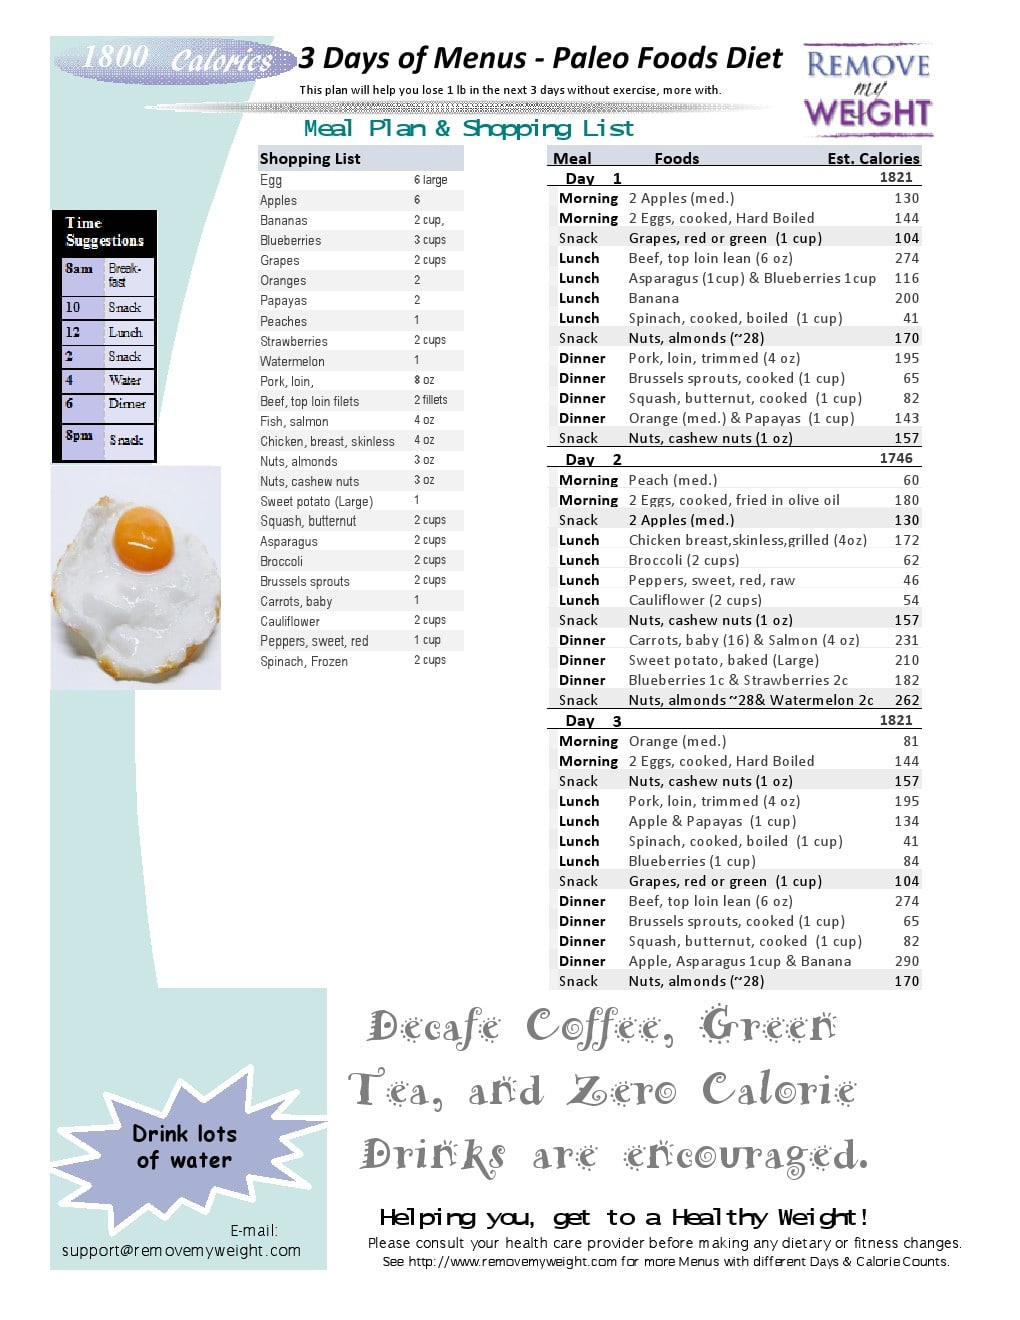 Paleo Meal Plan For Weight Loss - Weight Loss & Diet Plans